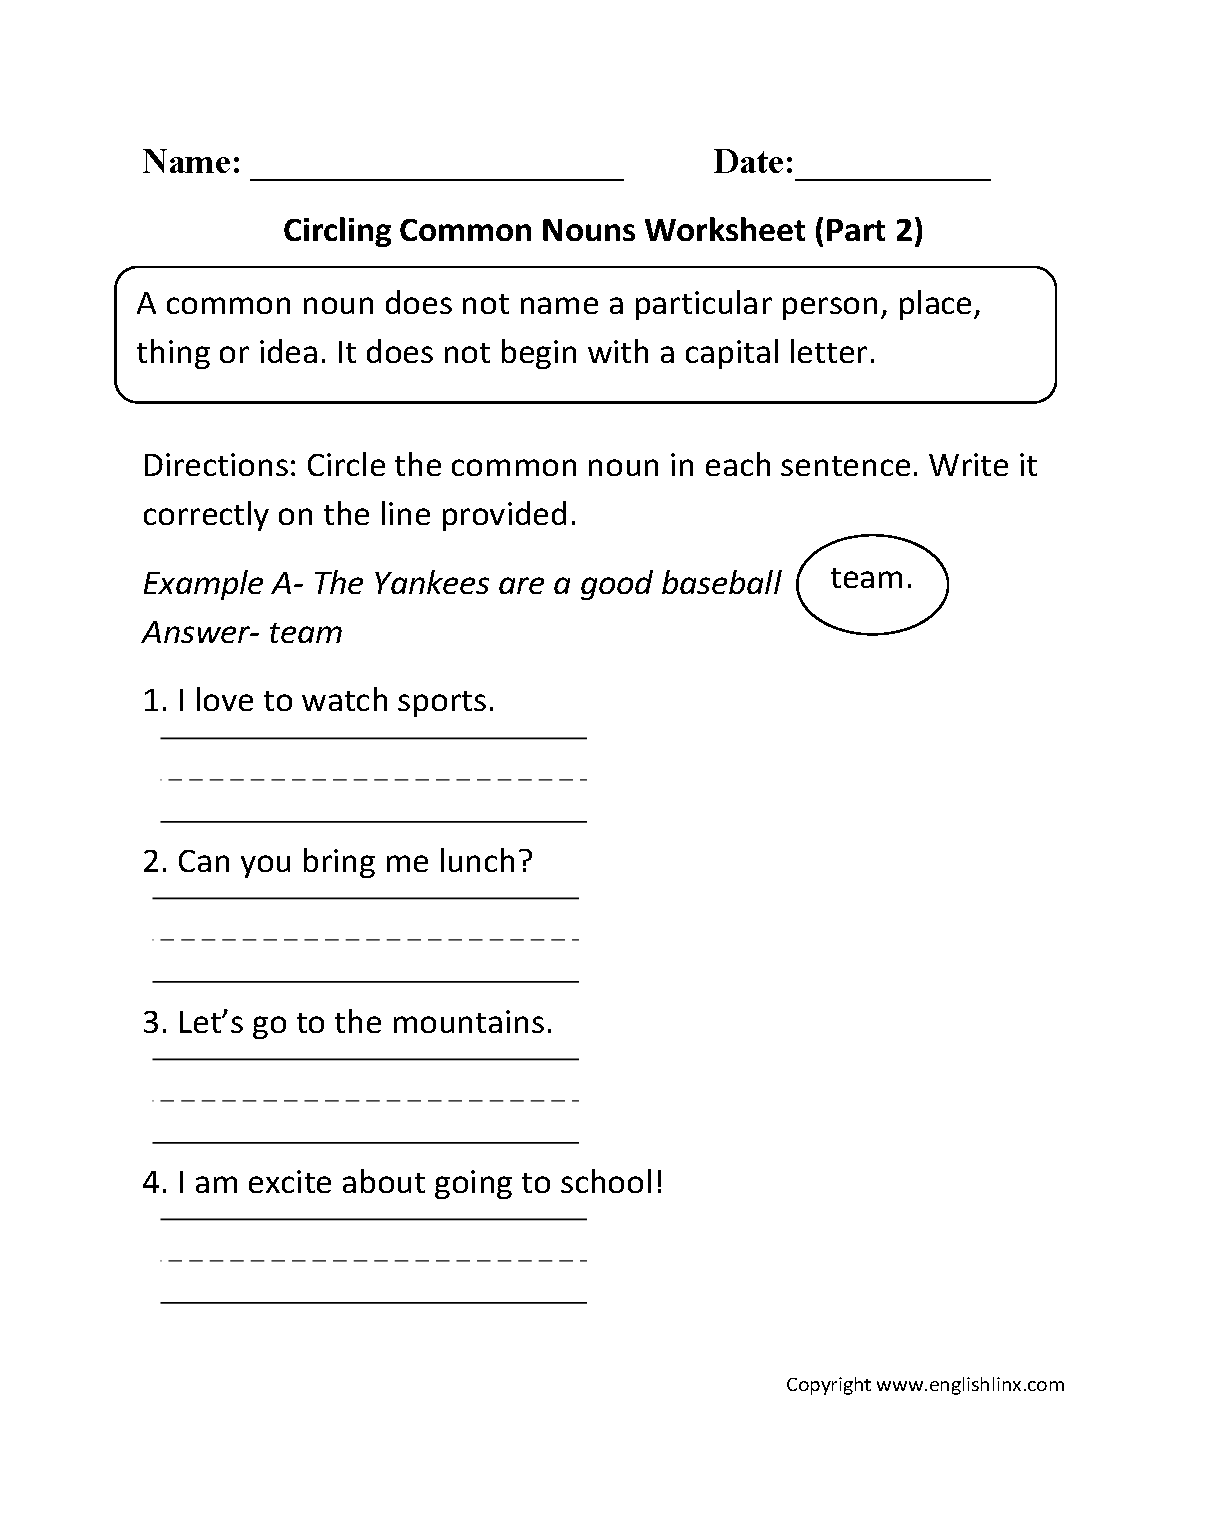 small resolution of Pin by Mais Samhouri on Homeschoolin' English   Common nouns worksheet